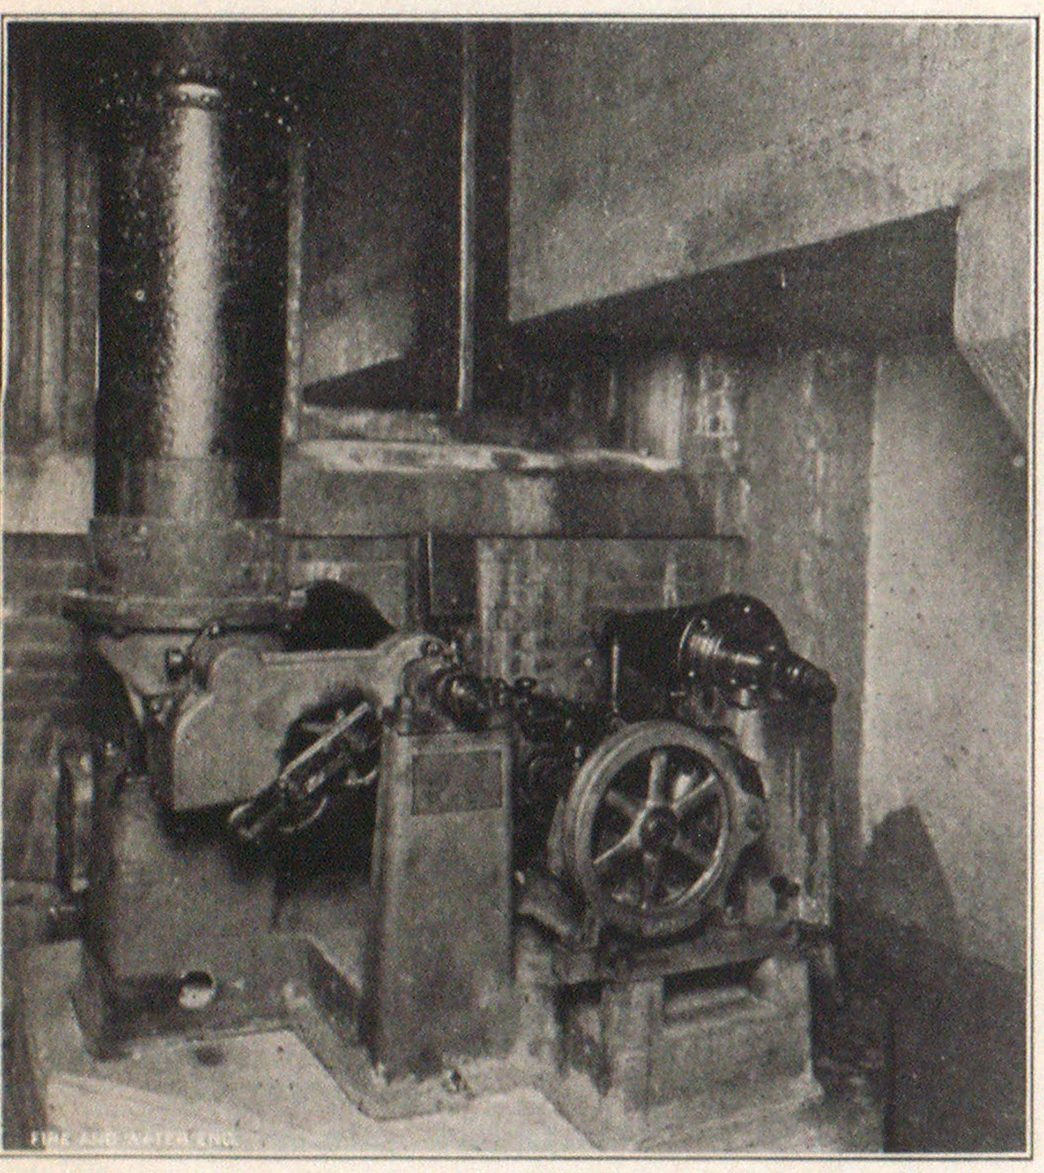 Dry Lime Feeding Machine, New Chester Water Company Plant